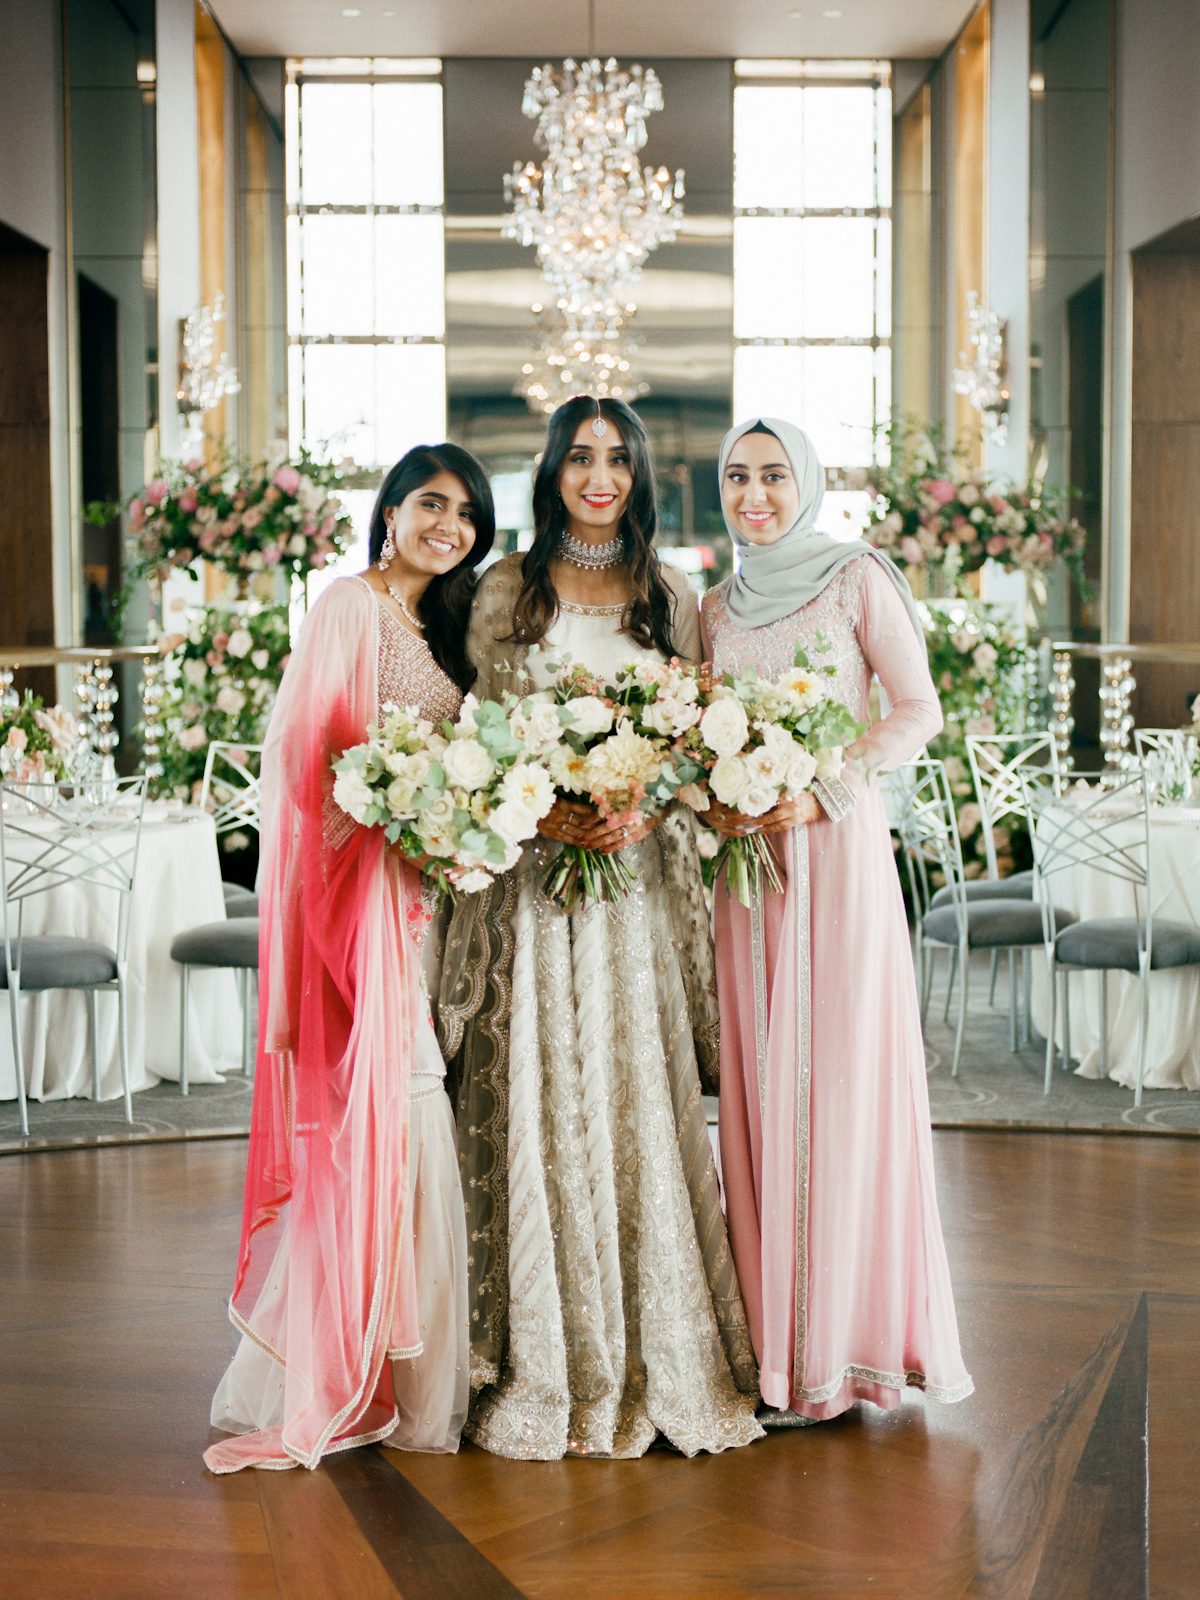 South asian bride and bridesmaids at Rainbow Room wedding